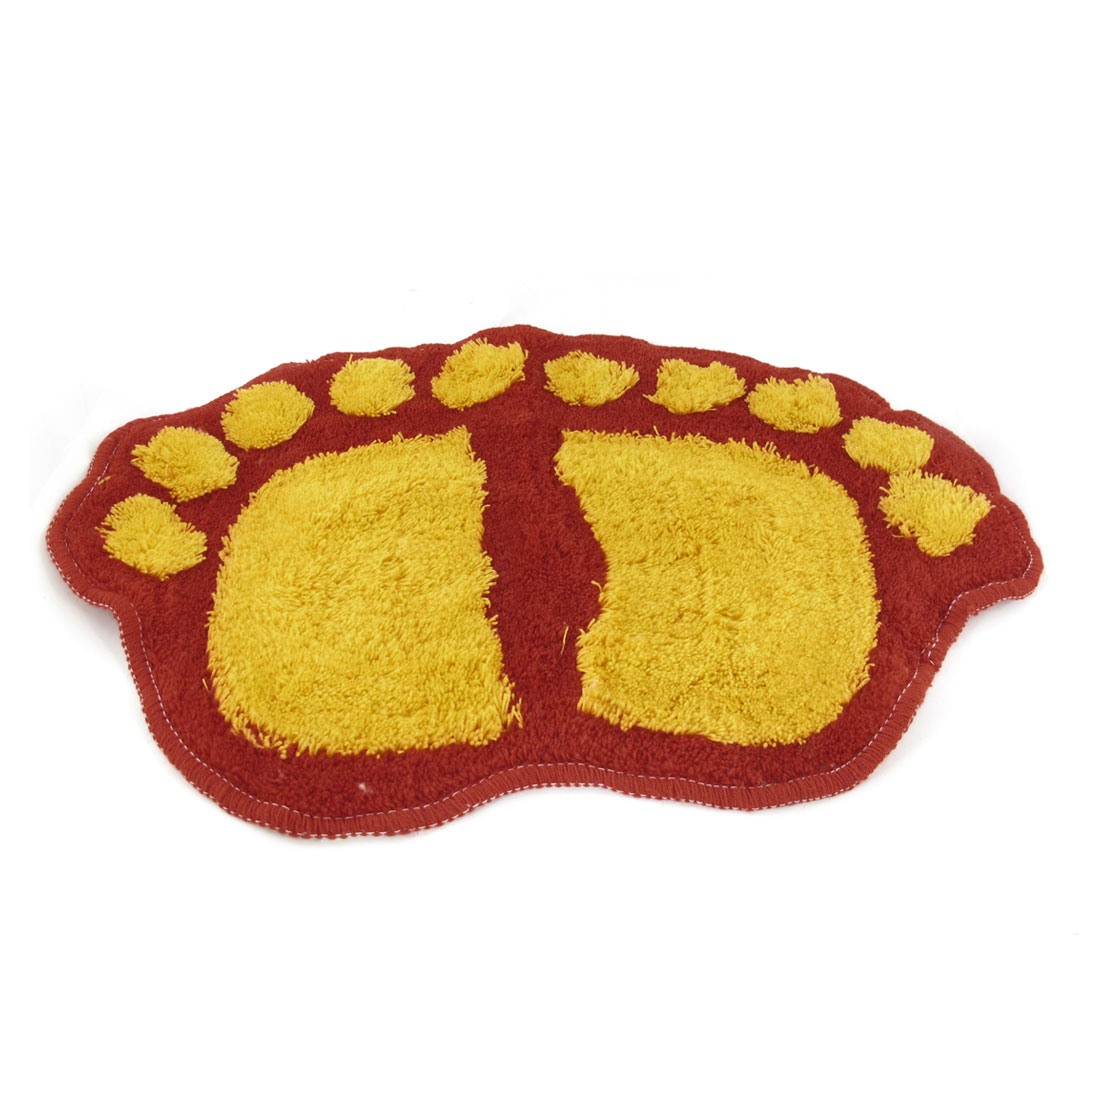 Red Yellow Plush Foot Pattern Water Absorbent Dry Mat Floor Pad for Bathroom